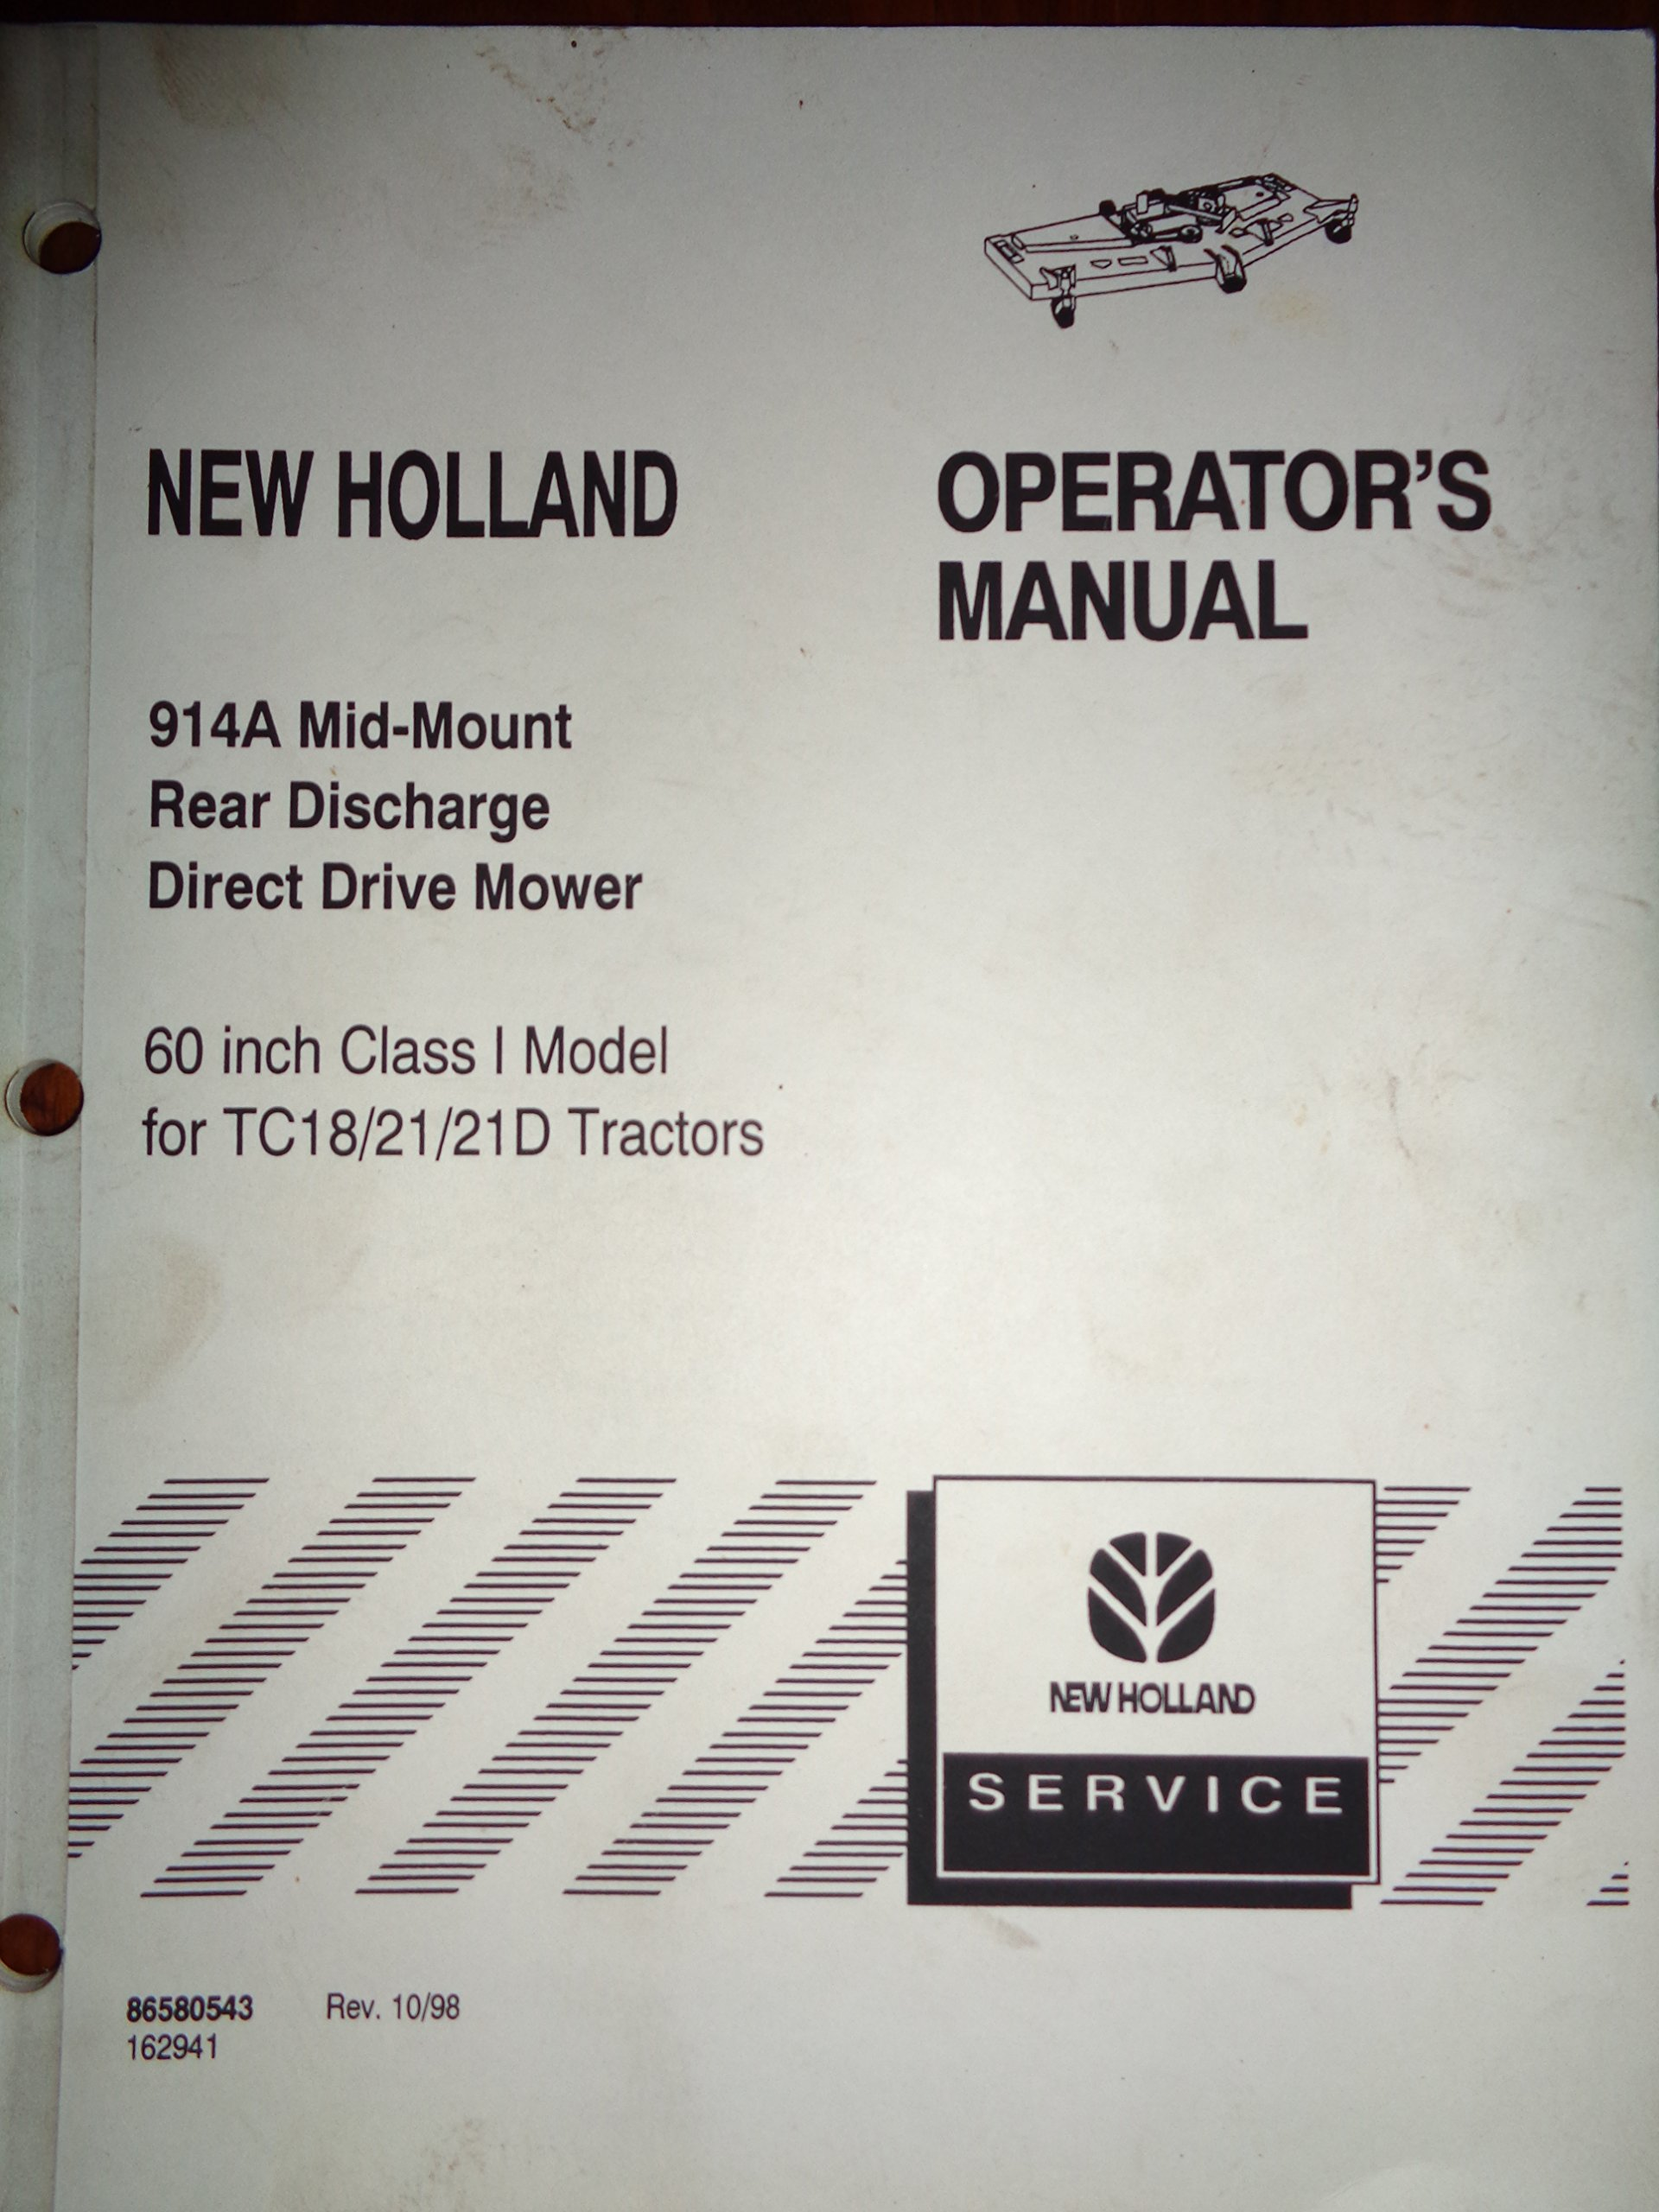 New Holland 914A Mid-Mount Rear Discharge Mower Operators / Parts Manual  (for use on TC18/TC21/TC21D Tractors) 10/98: New Holland: Amazon.com: Books